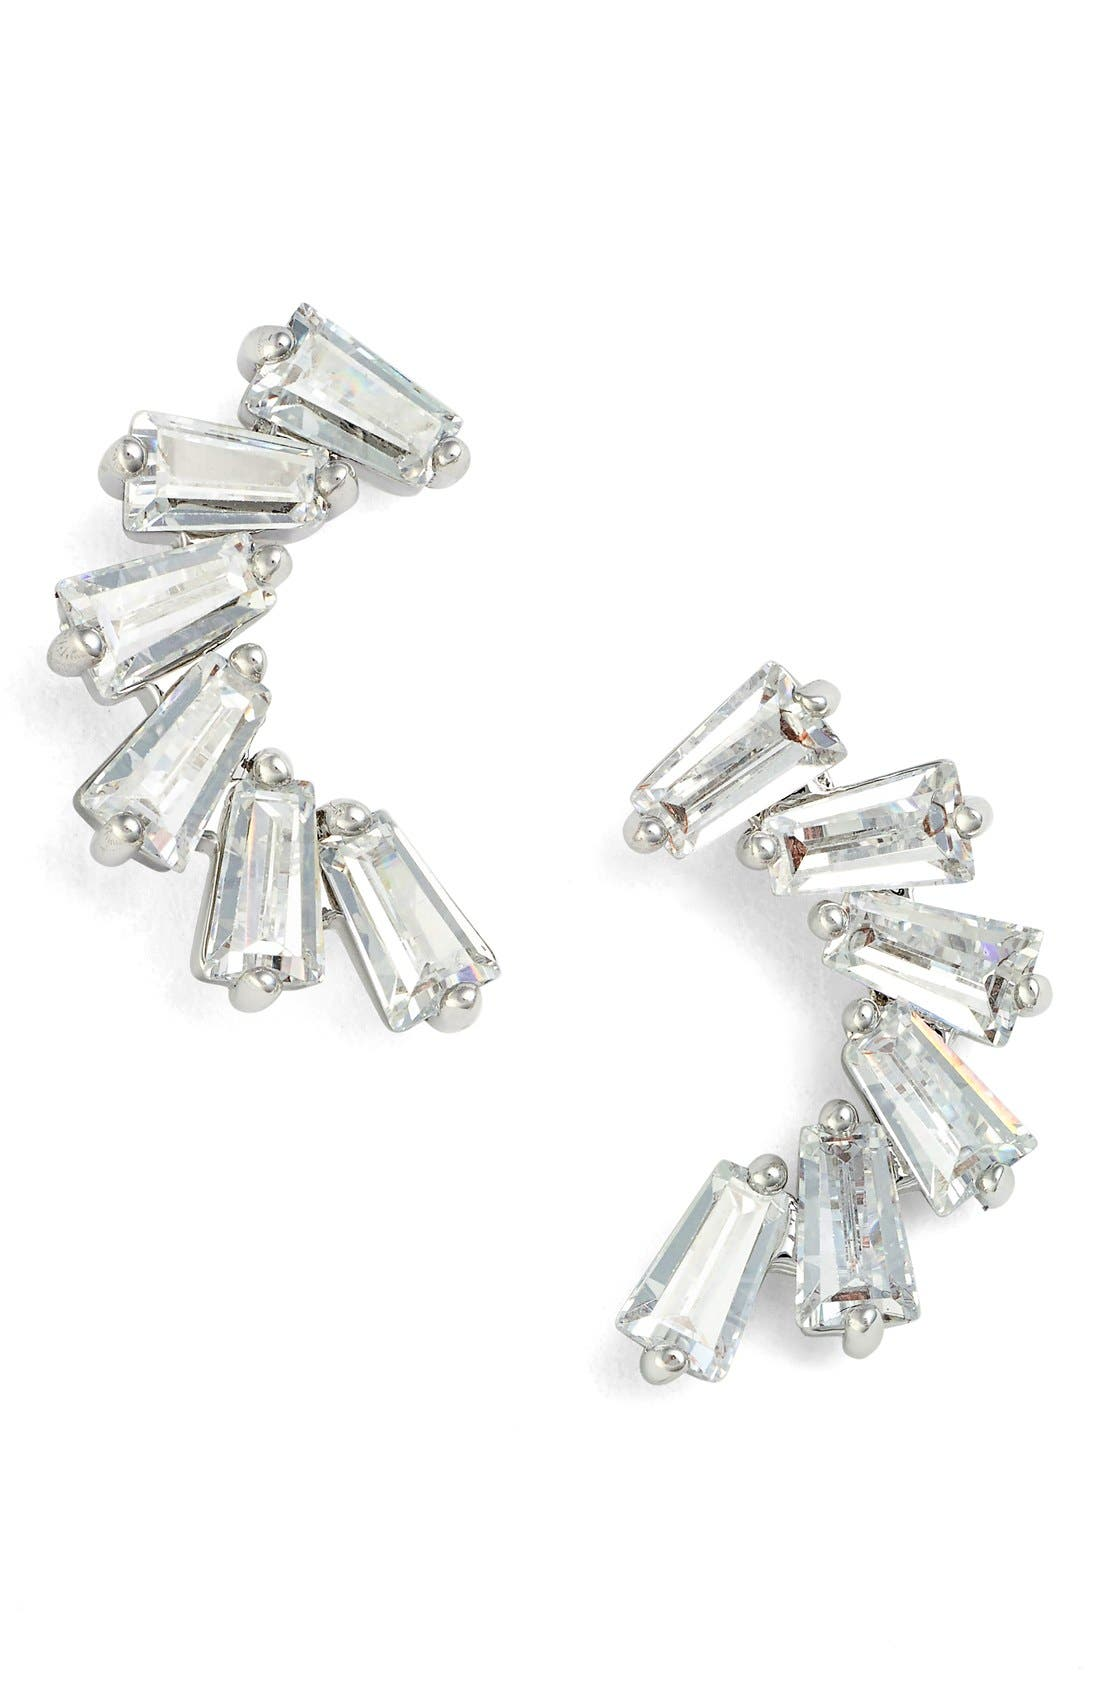 Main Image - CZ by Kenneth Jay Lane Curved Baguette Cubic Zirconia Stud Earrings